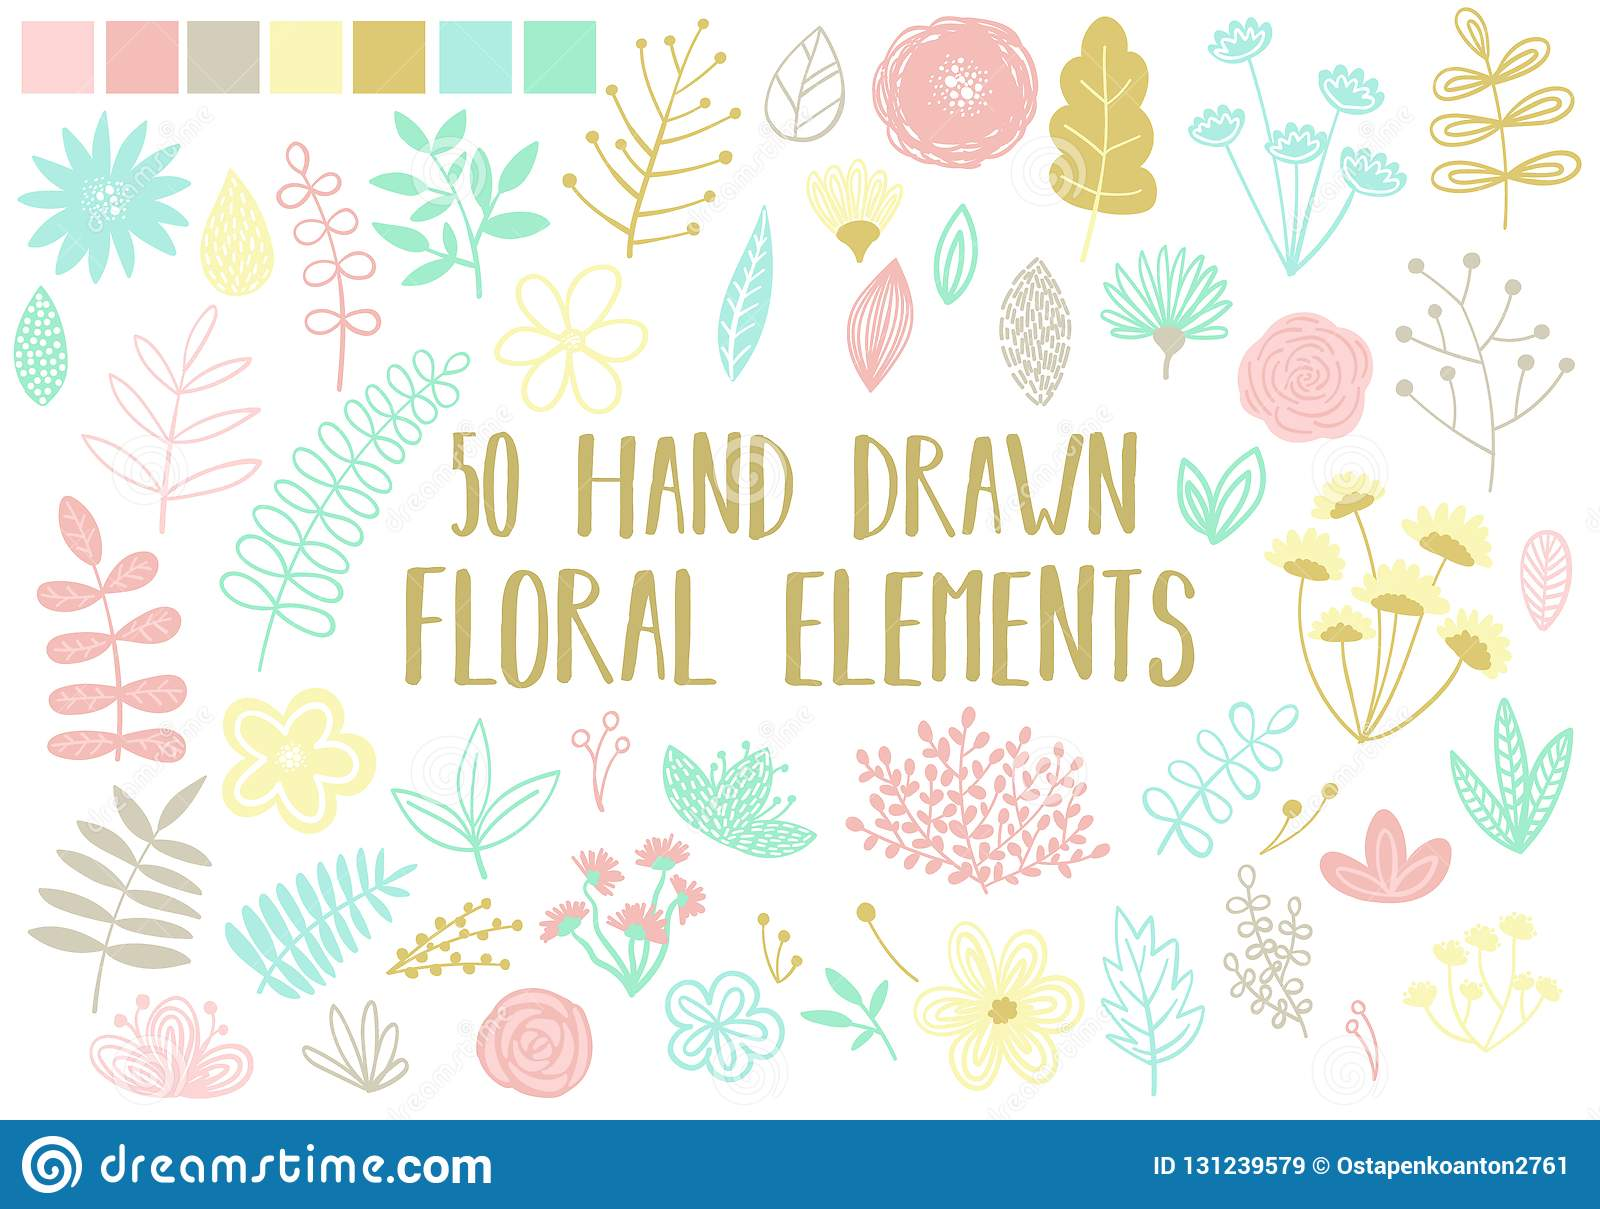 Vector image of hand-drawn floral elements on a light background. Cartoon illustration of a set of isolated flowers, leaves and bl